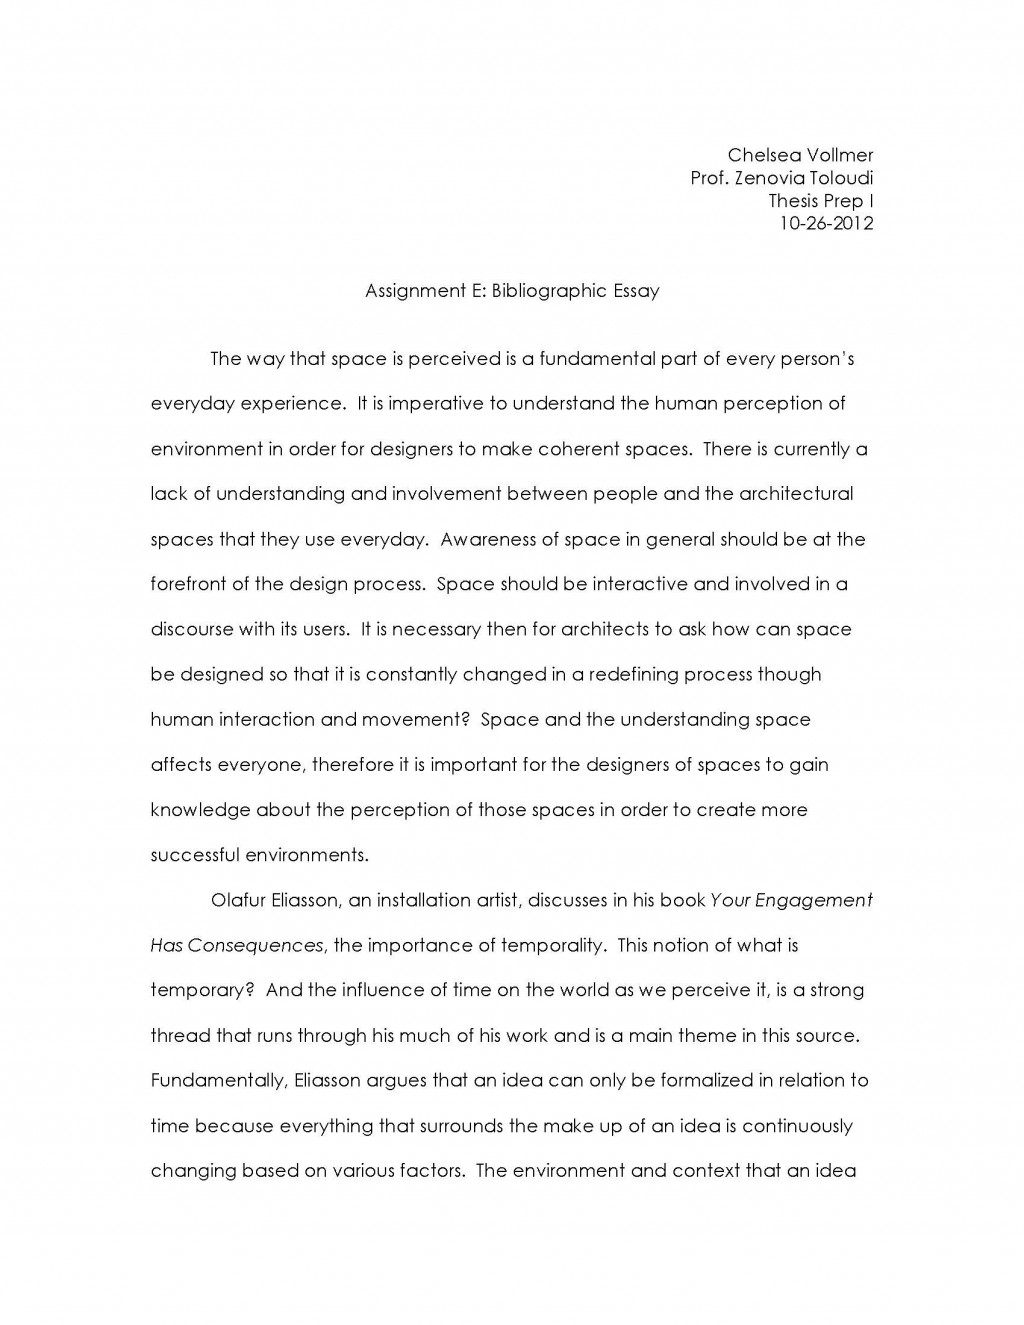 006 Essay Example Assignment E Page 12 How To Write Fascinating A Satire On Obesity Outline Large